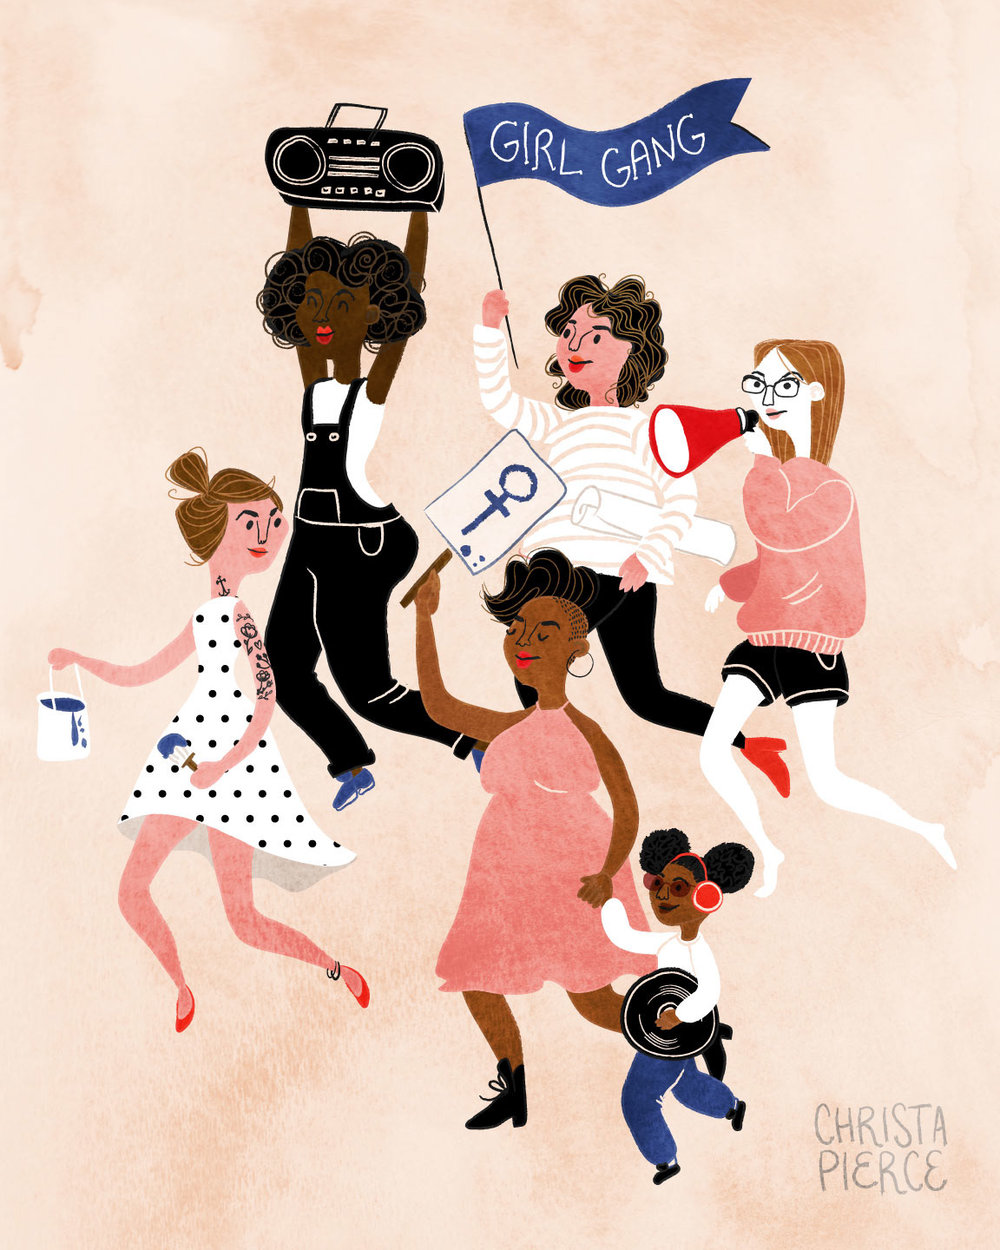 Image: Girl Gang by Christa Pierce